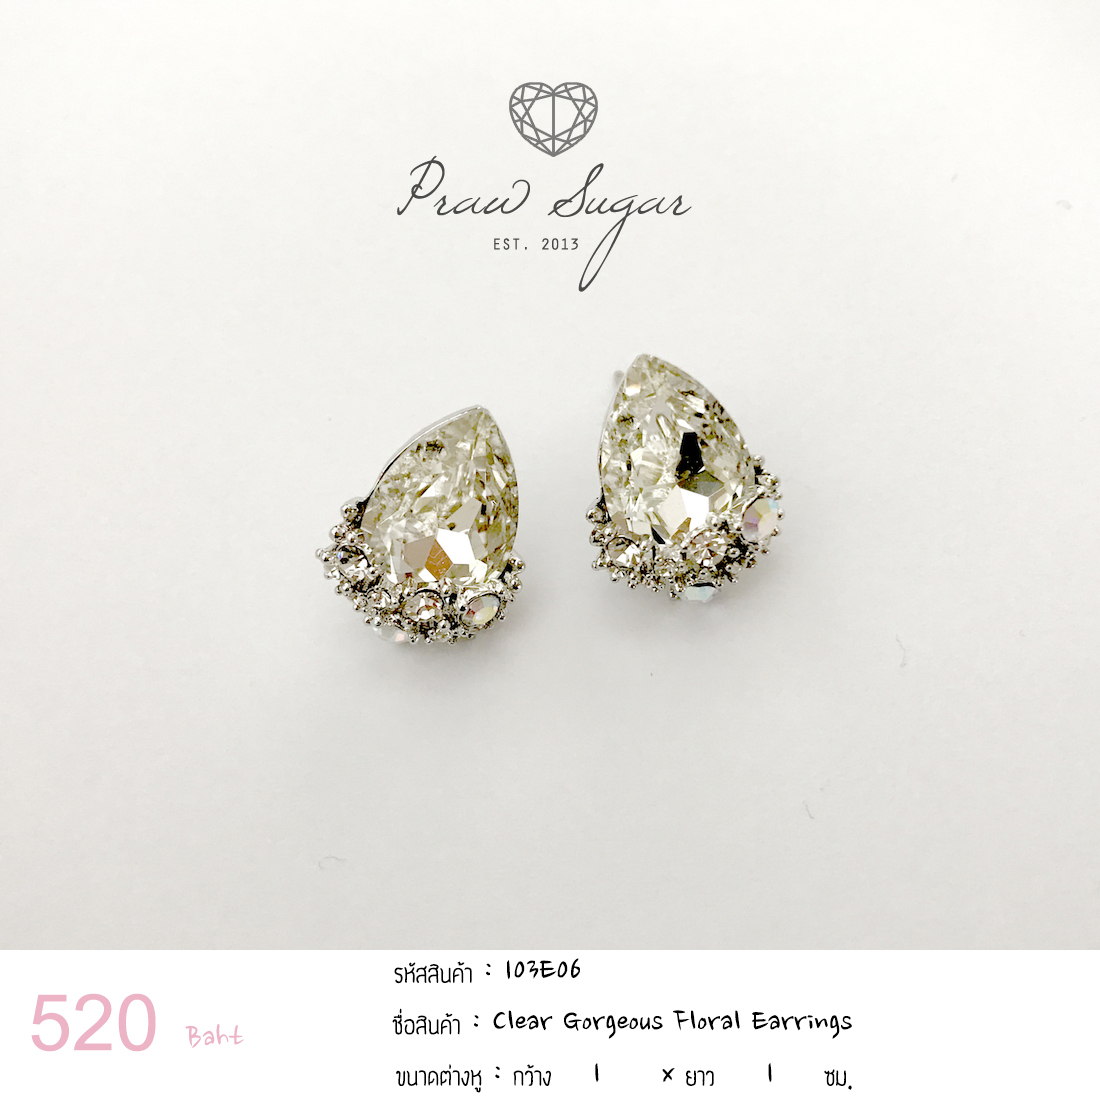 Clear Gorgeous Floral Earrings